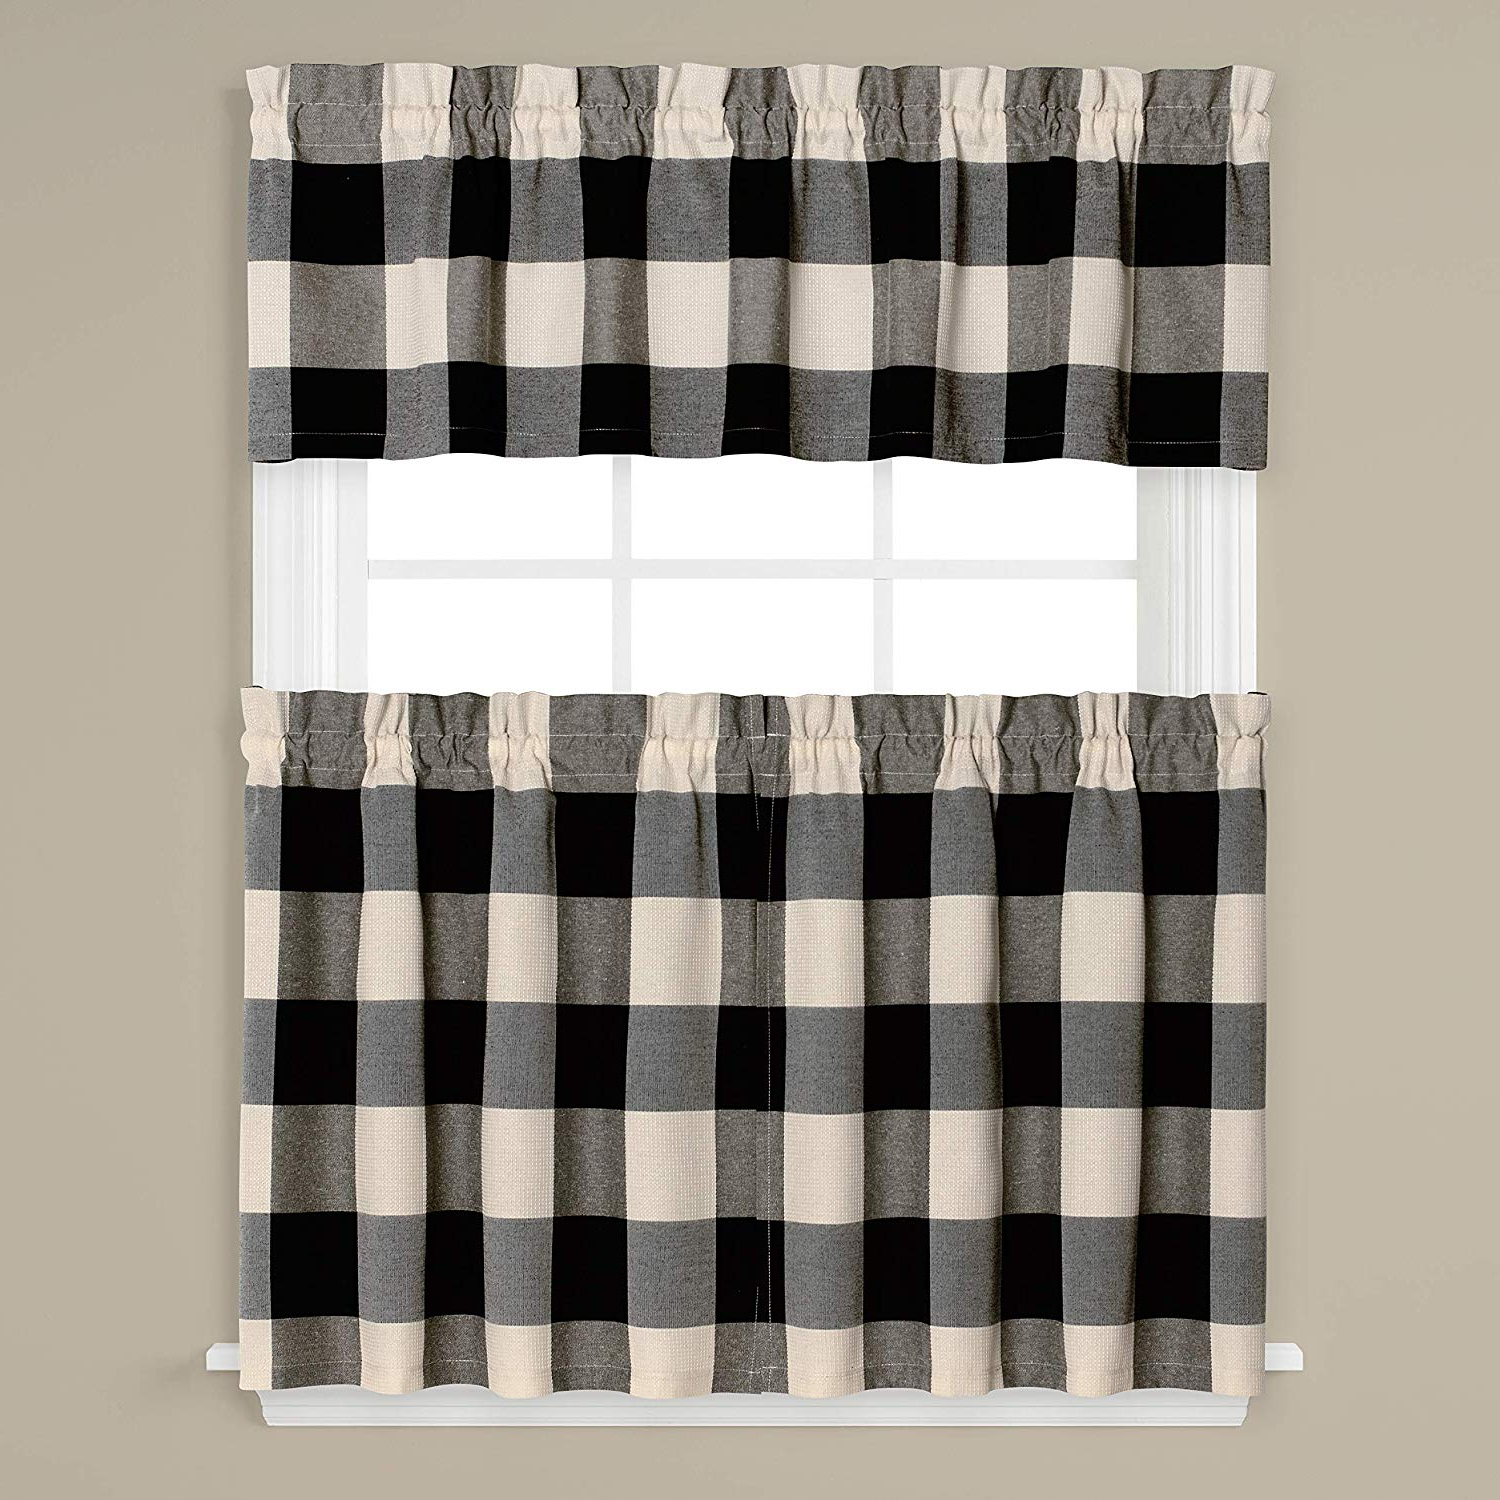 Grandin Curtain Valances In Black For 2020 Skl Homesaturday Knight Ltd (View 2 of 20)